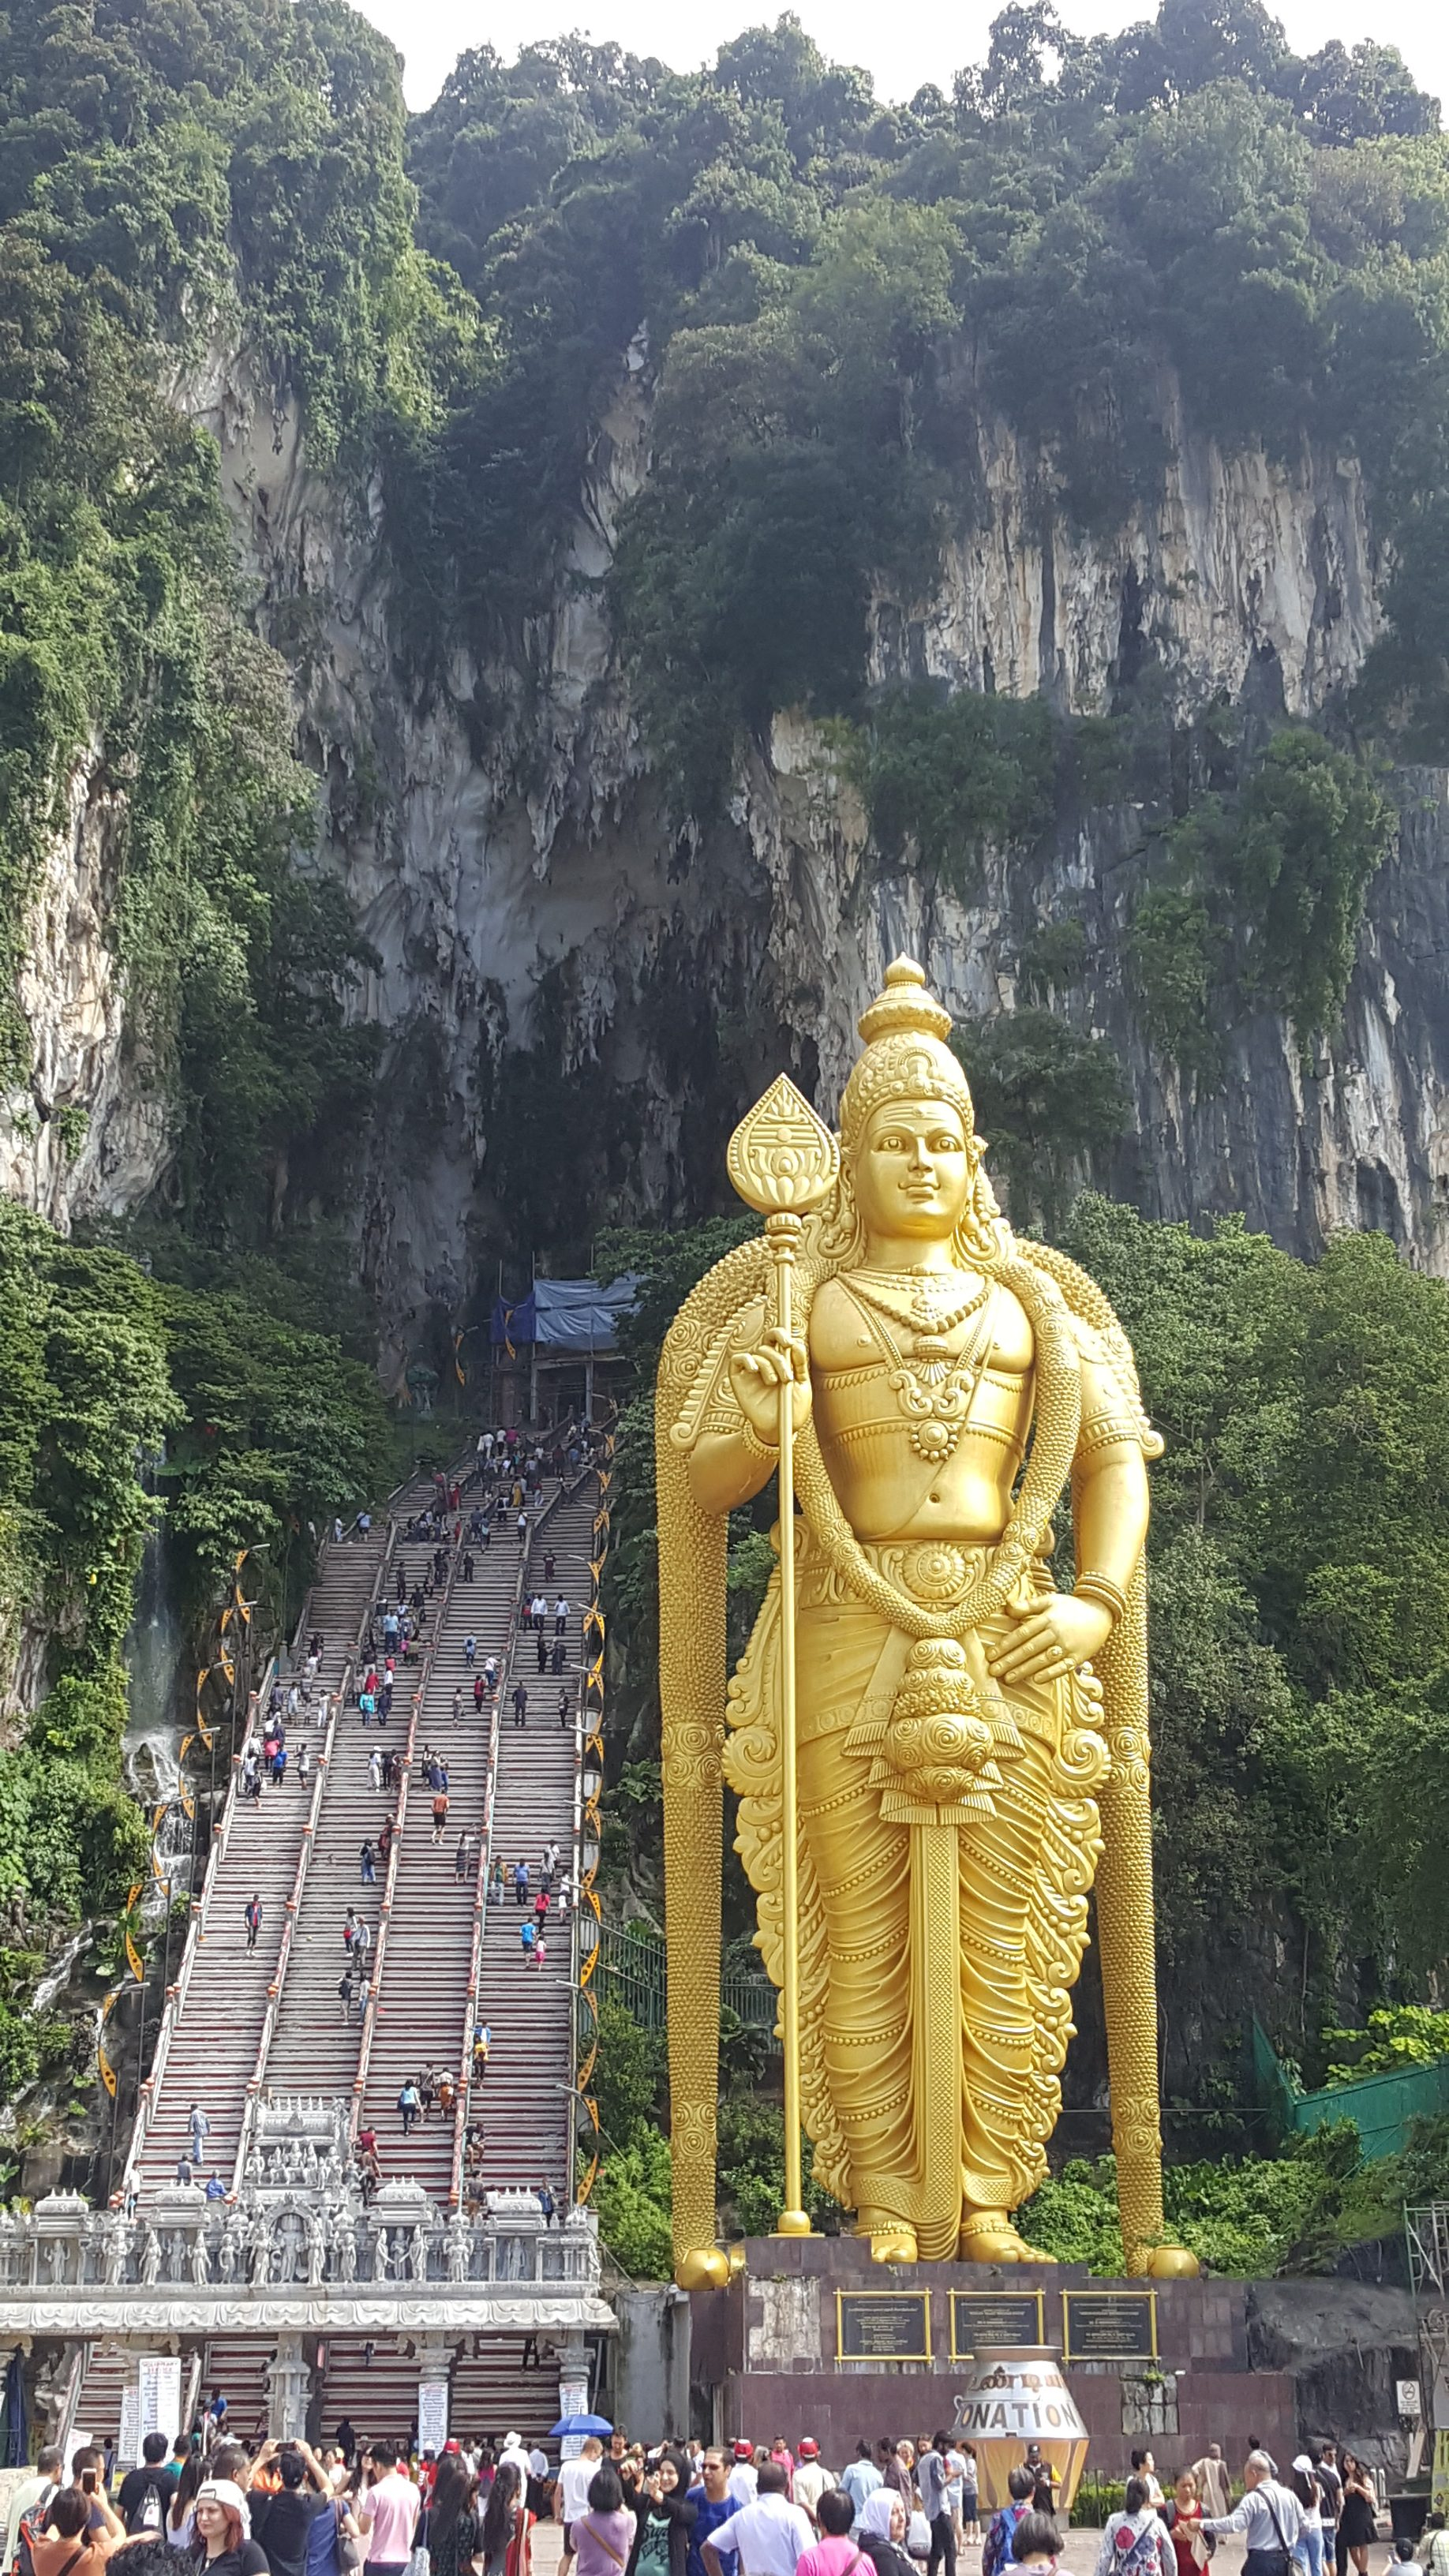 The entrance to the Batu Caves, set into a large hillside with 272 steps leading up, and a 140 foot gold hindu statue marking the entrance to the steps. Crowds walk up and down the steps and congregate at the bottom